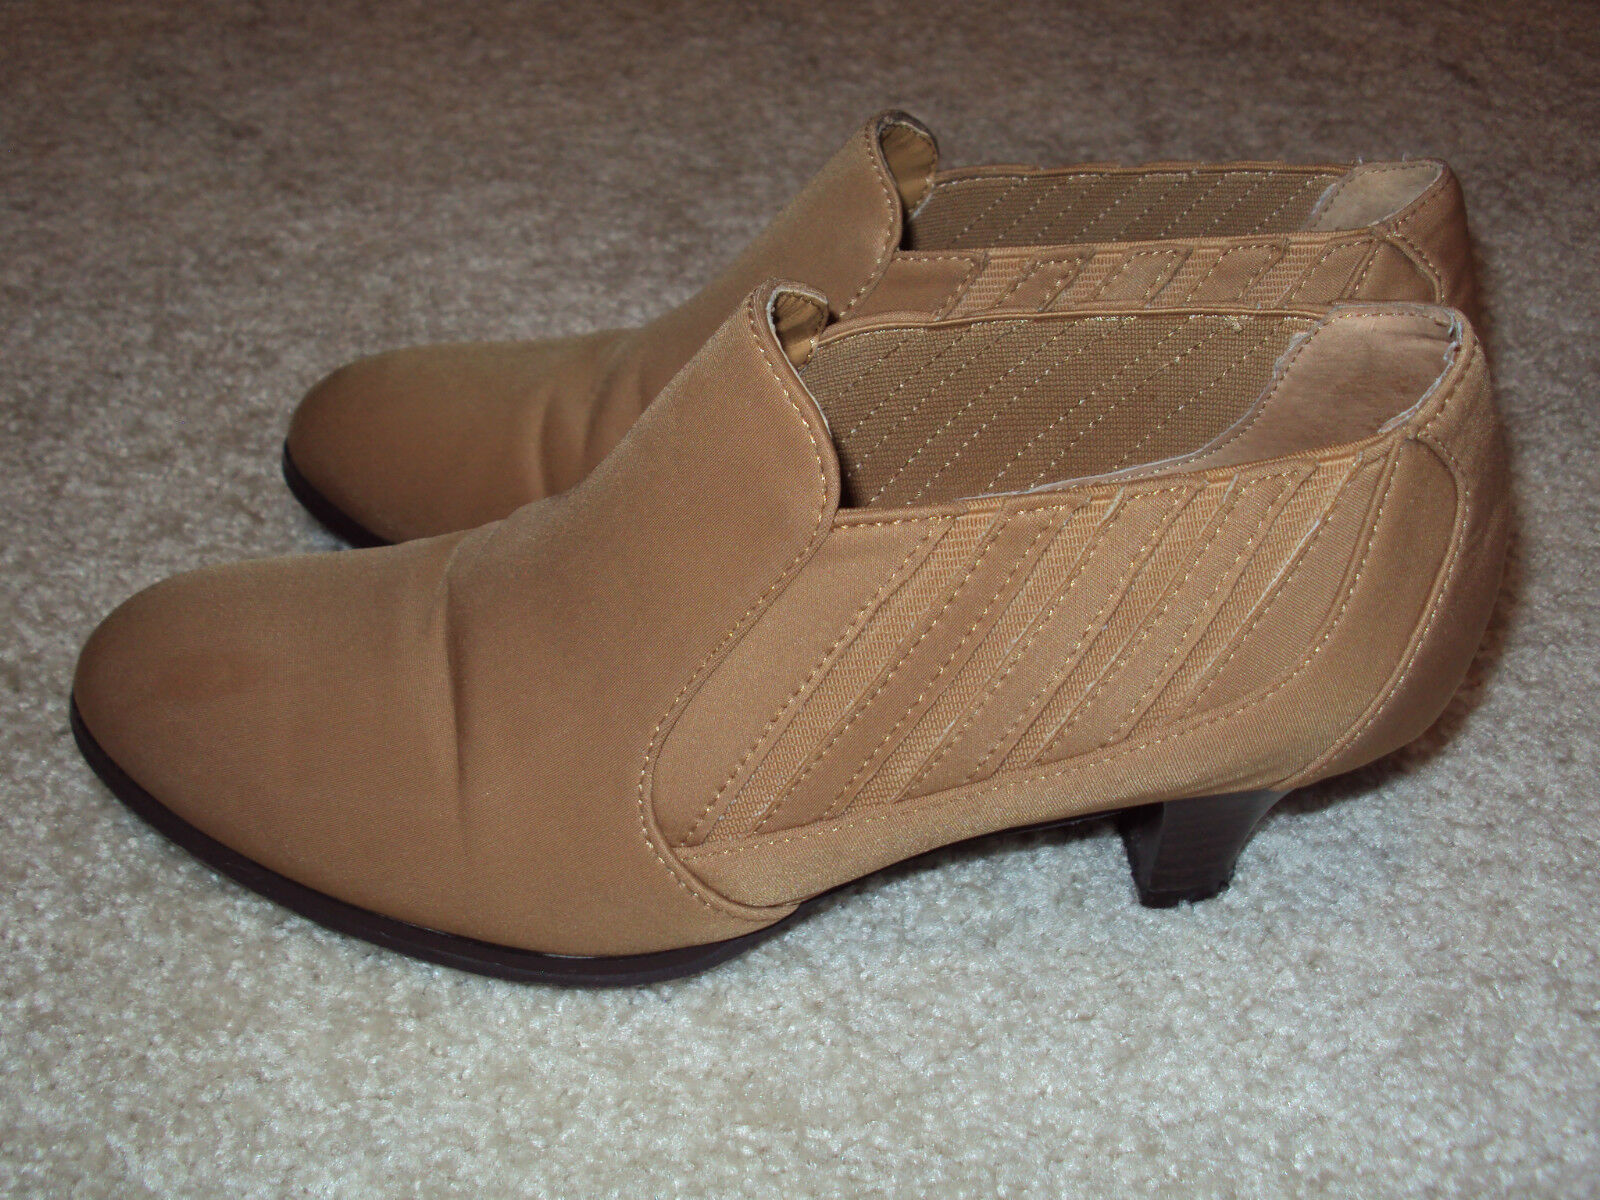 EUC Womens On Cute Light Brown Camel Valenci Slip On Womens Shoes/Boots Size 8M/ Christmas 87e6c3